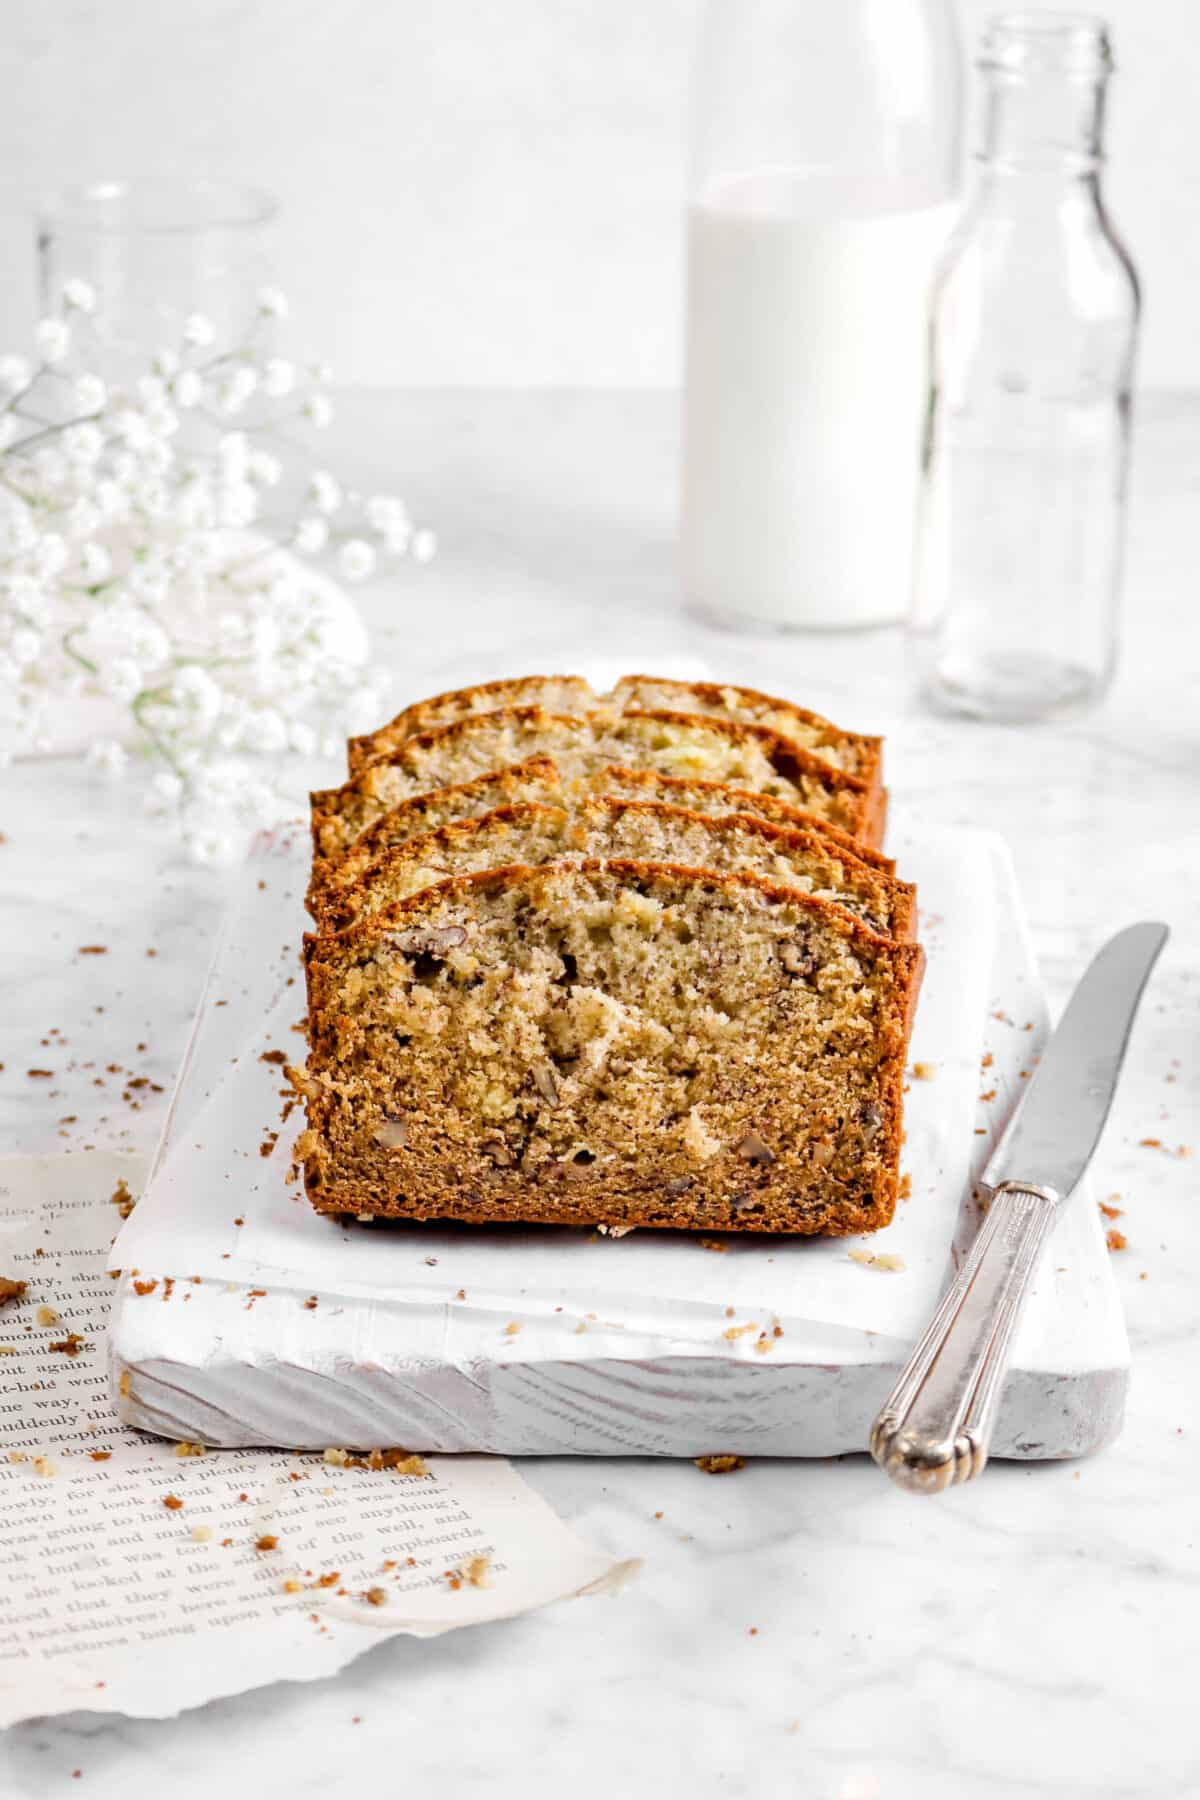 slices of banana bread on white board with crumbs, knife, book pages, flowers, and glasses